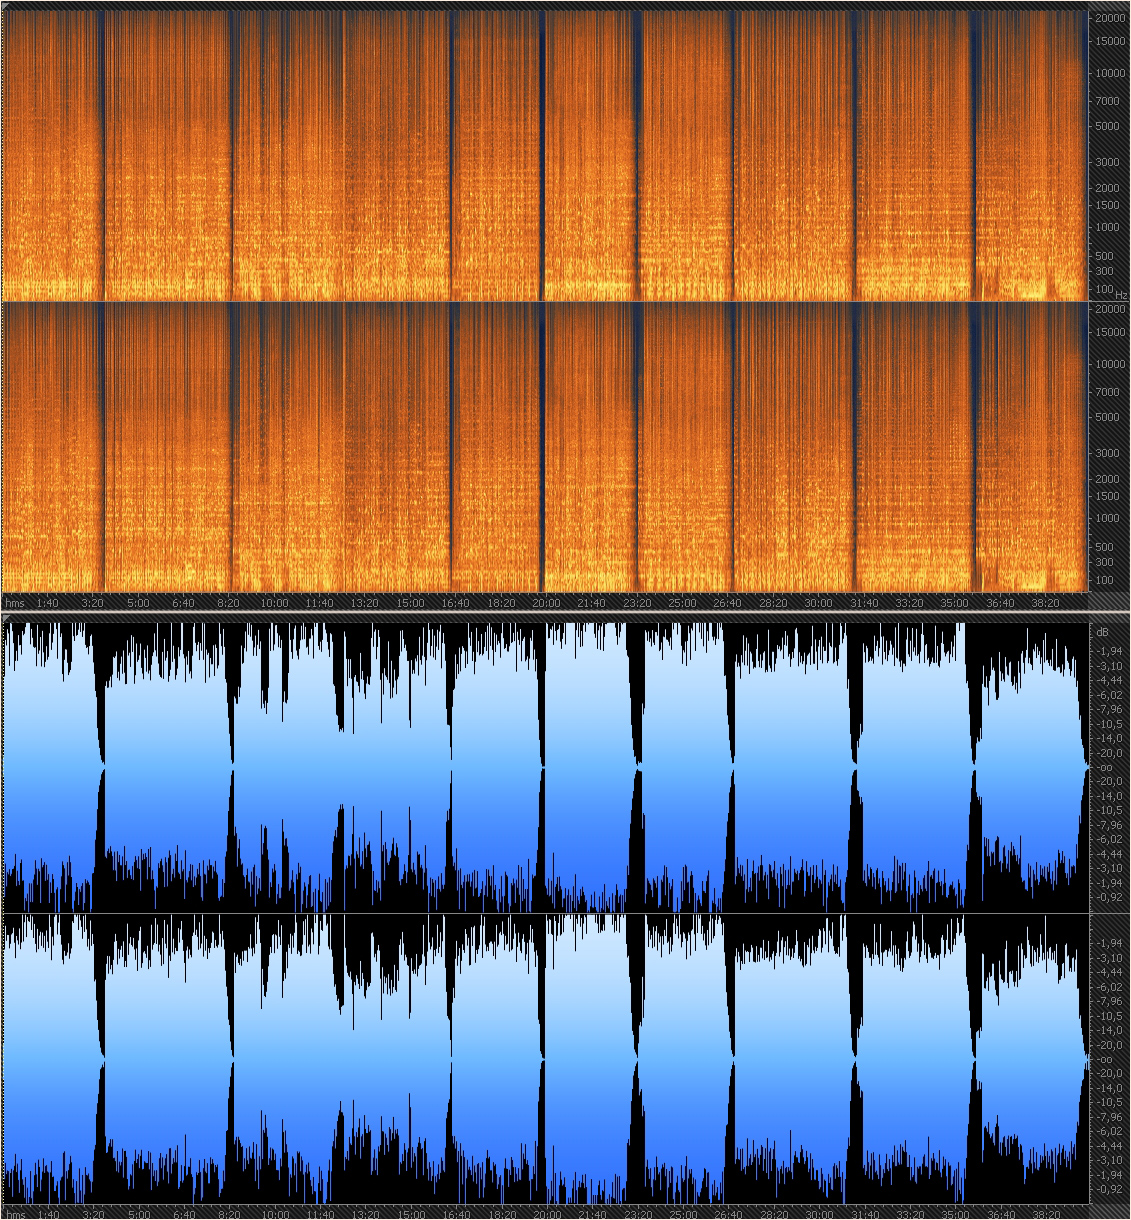 Nazareth83SoundElixir_side1-2_Spectrogram.jpg